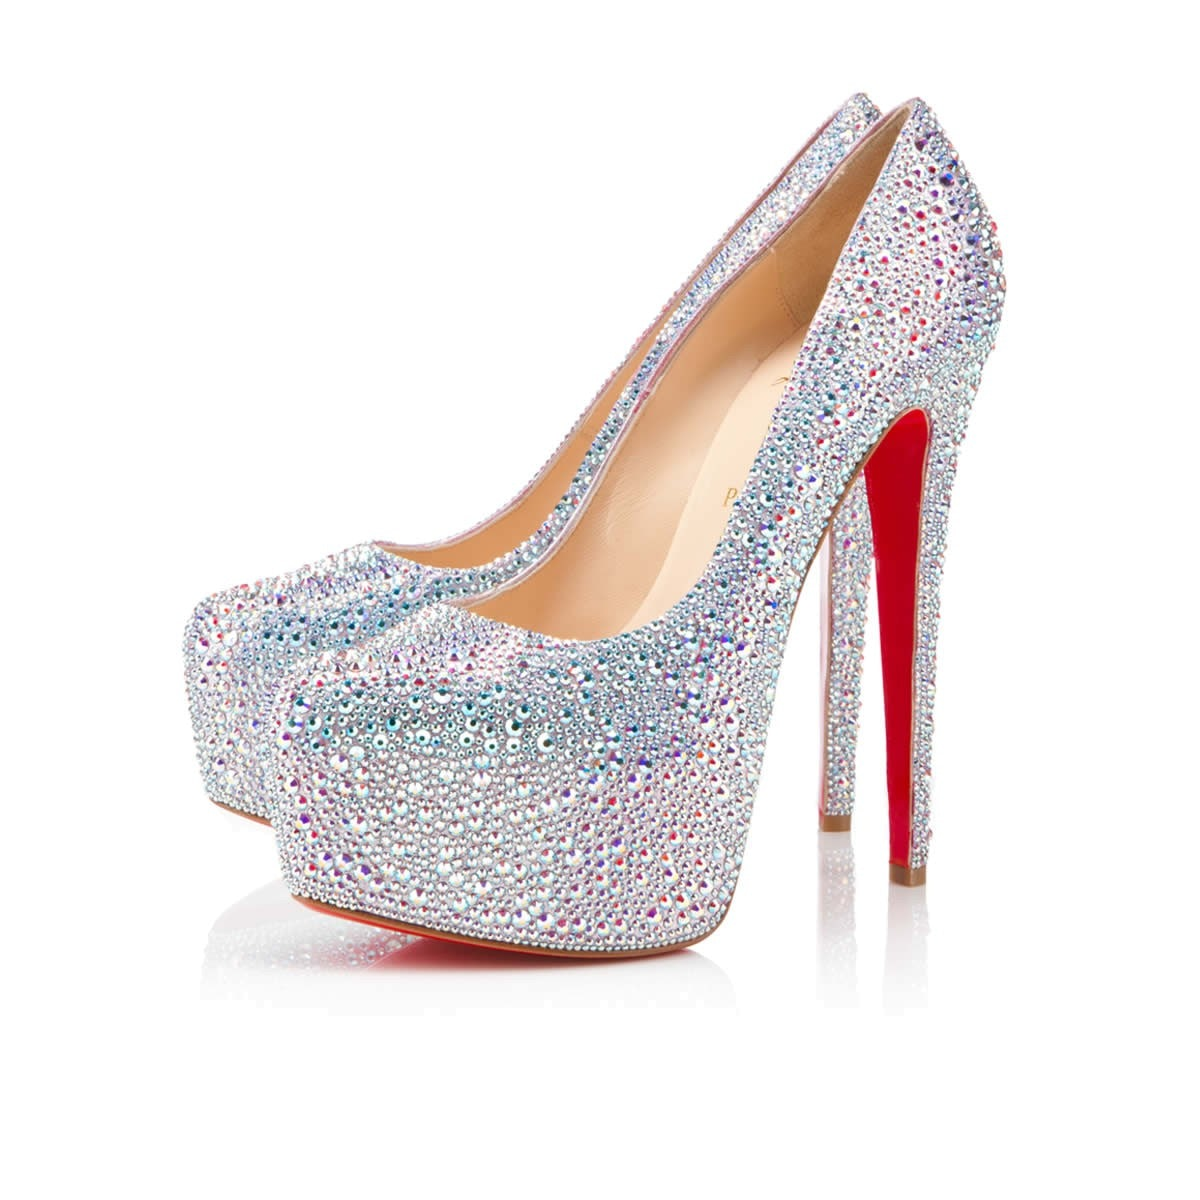 The Most Expensive Shoes Money Can Buy